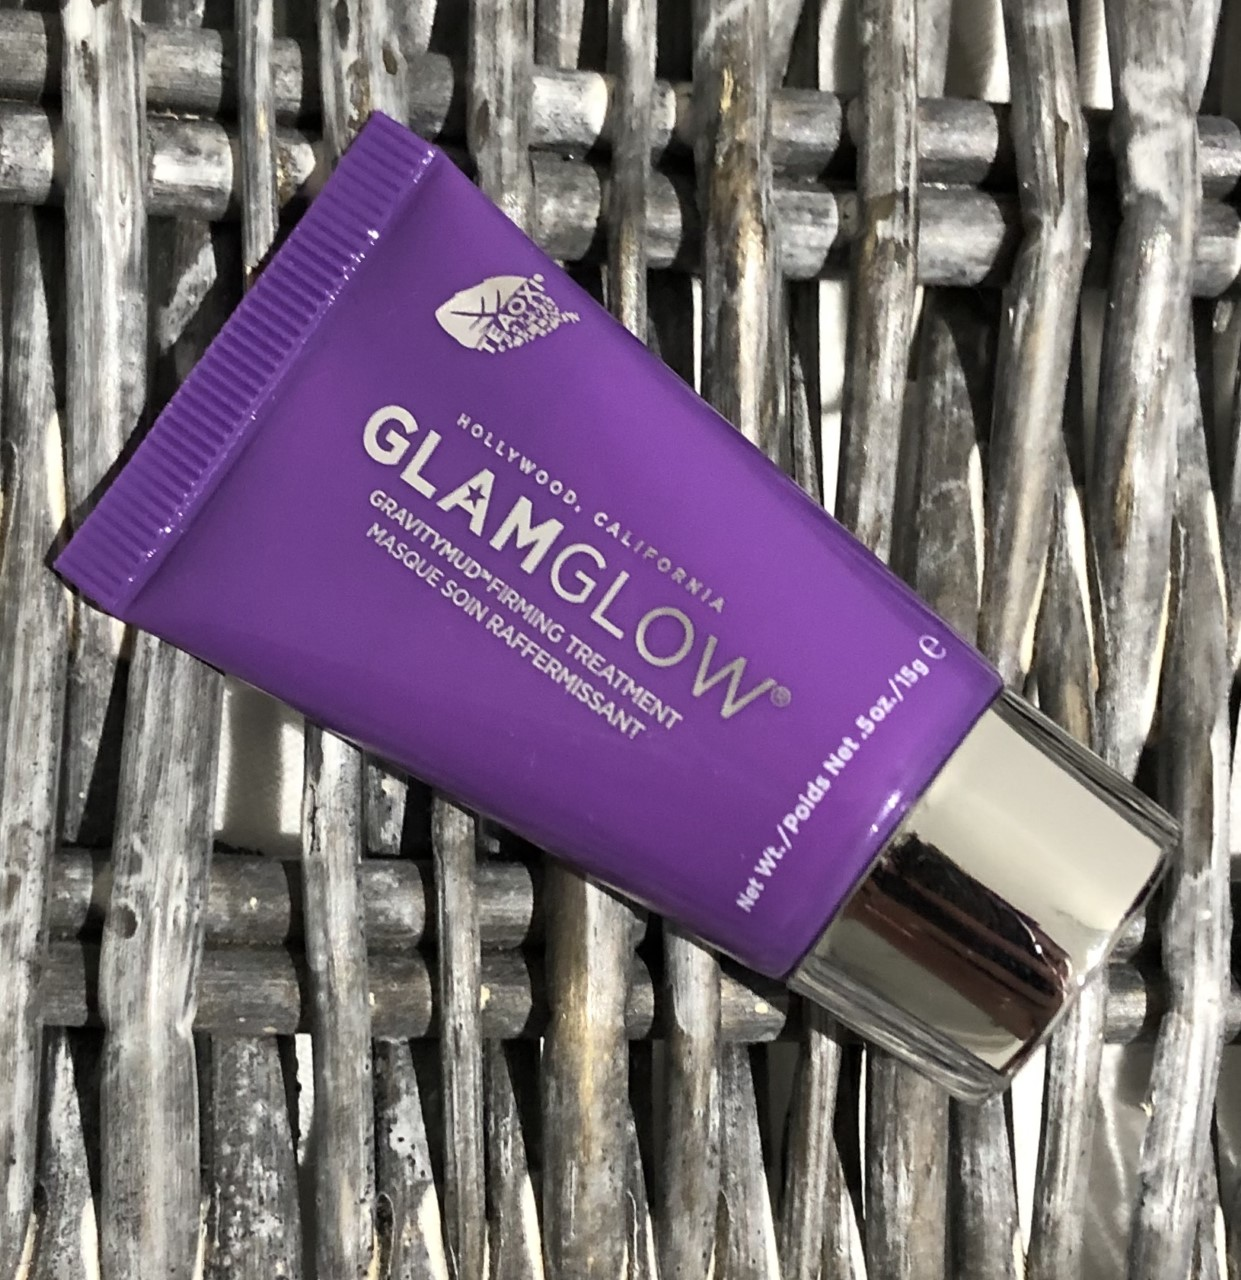 Glamglow Gravitymud Mask Review graphic